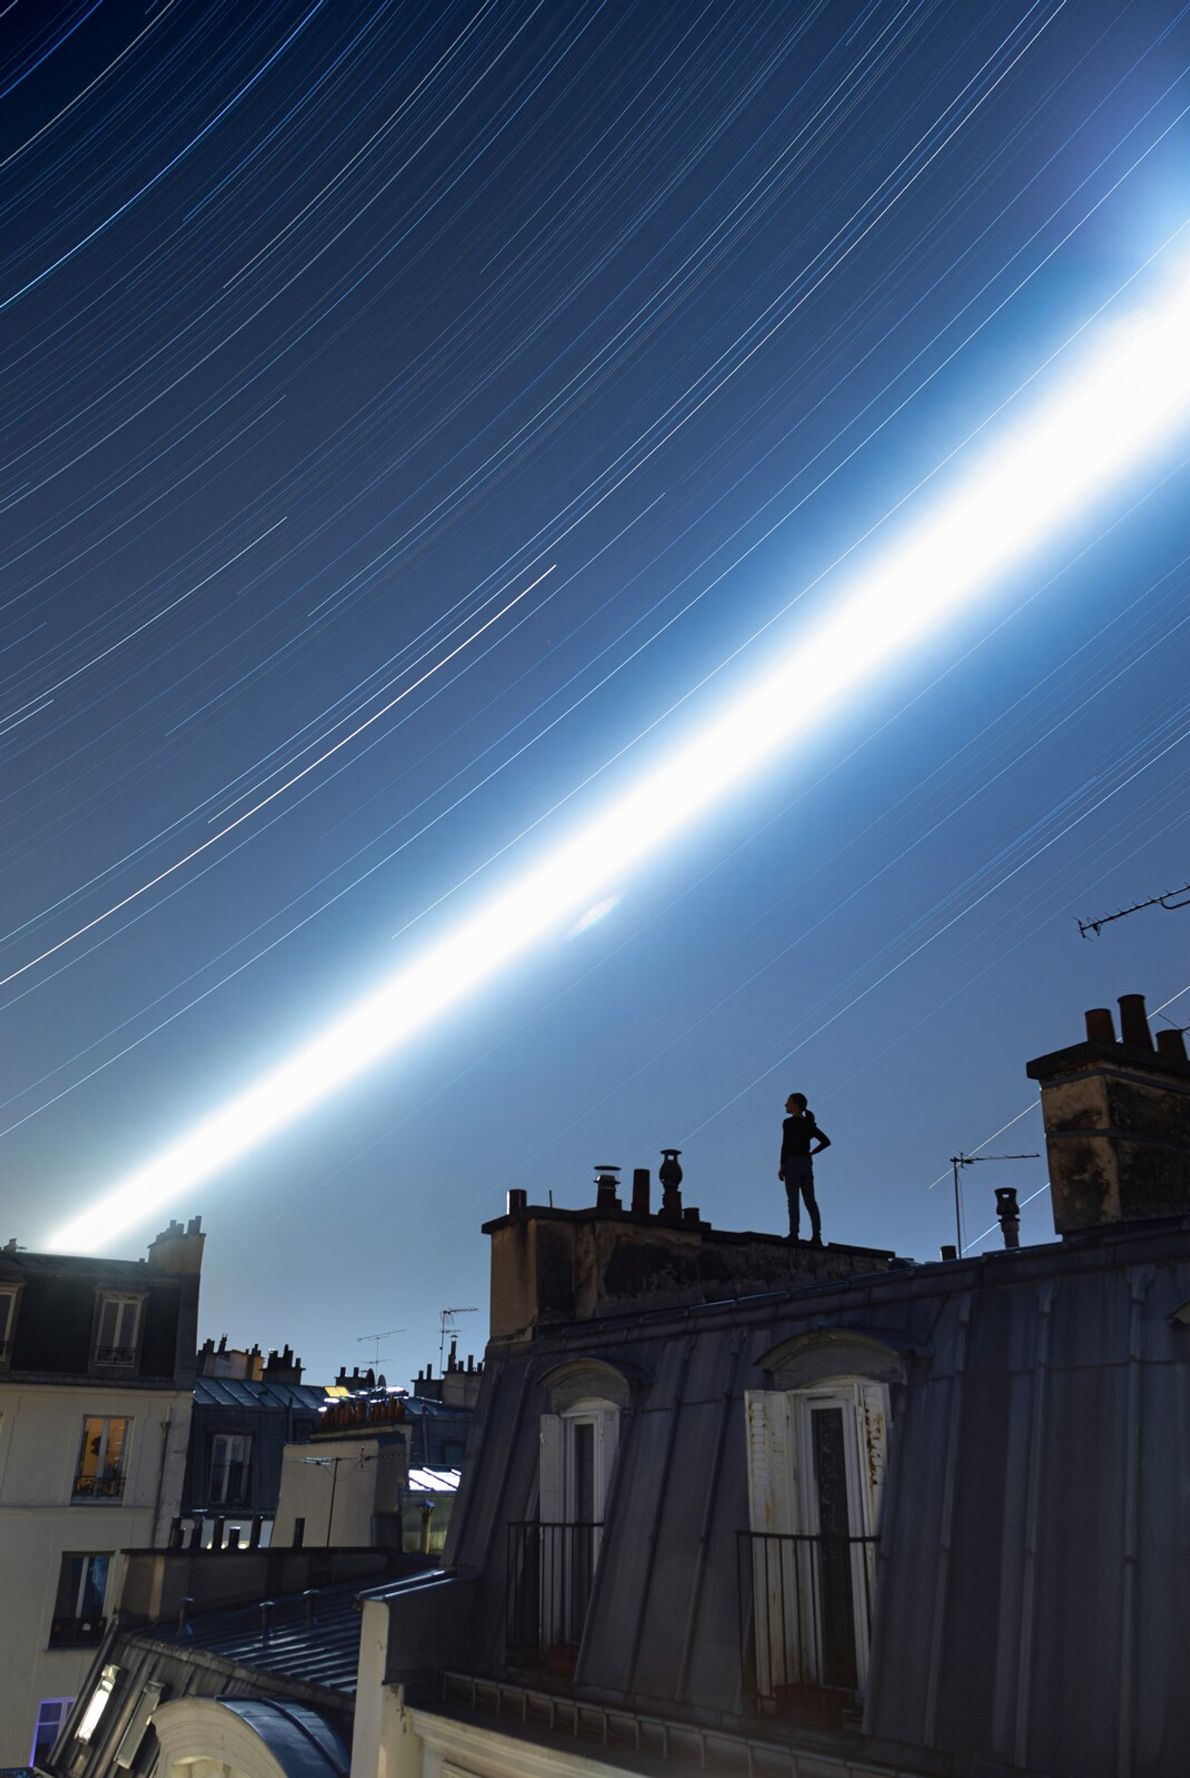 A striking view of the moon's transit across the Parisian rooftops presented many challenges in terms ...